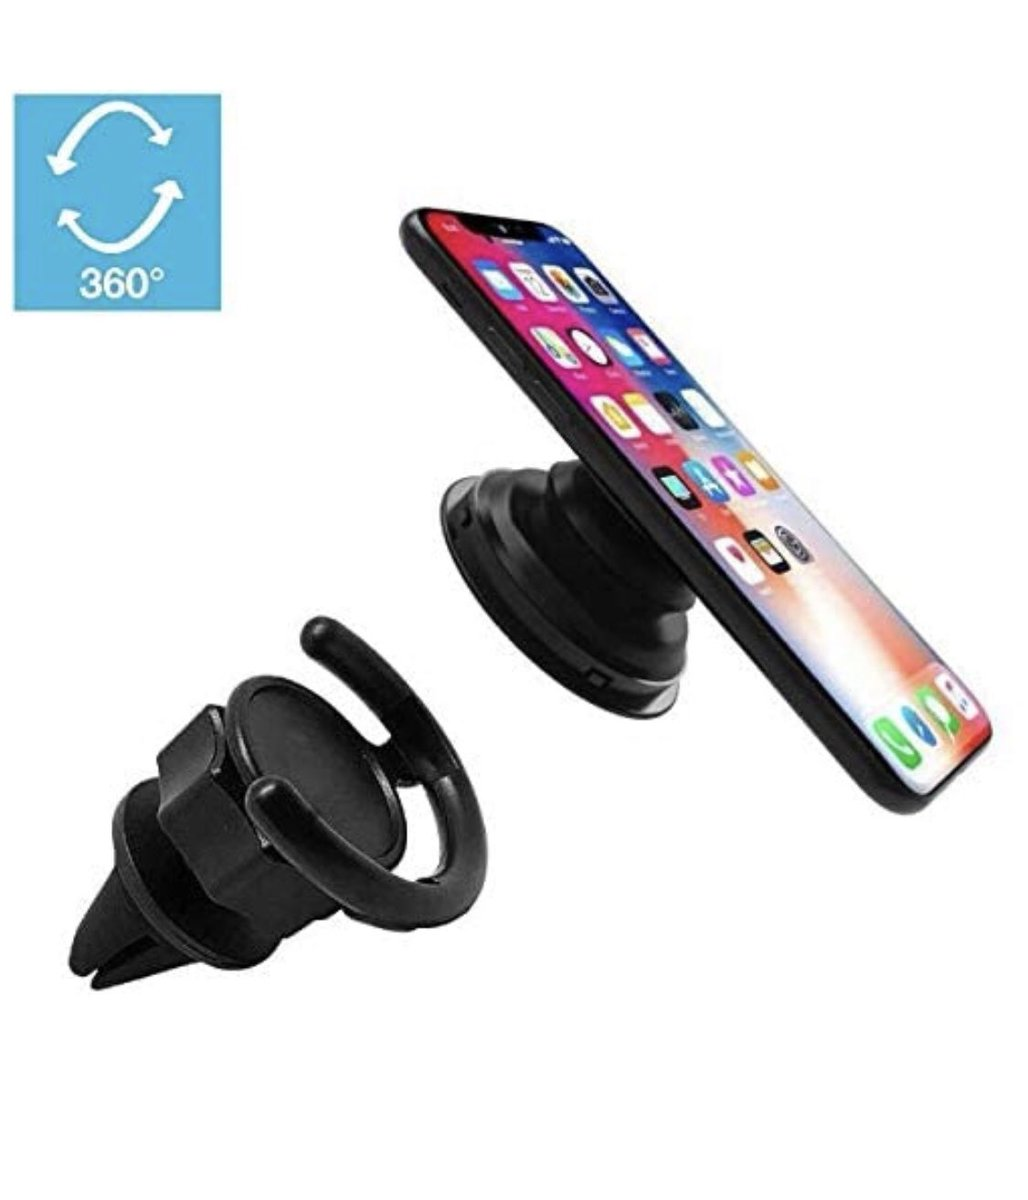 The Best 2020 Phone Holders Available now at Amazon http://Bit.ly/FastTrackUSA Get yours !!! #phoneholder #phonemount #carphoneholders #mobileaccessories #iphone #iphone11 #iphone10 pic.twitter.com/8TnM19zHWL